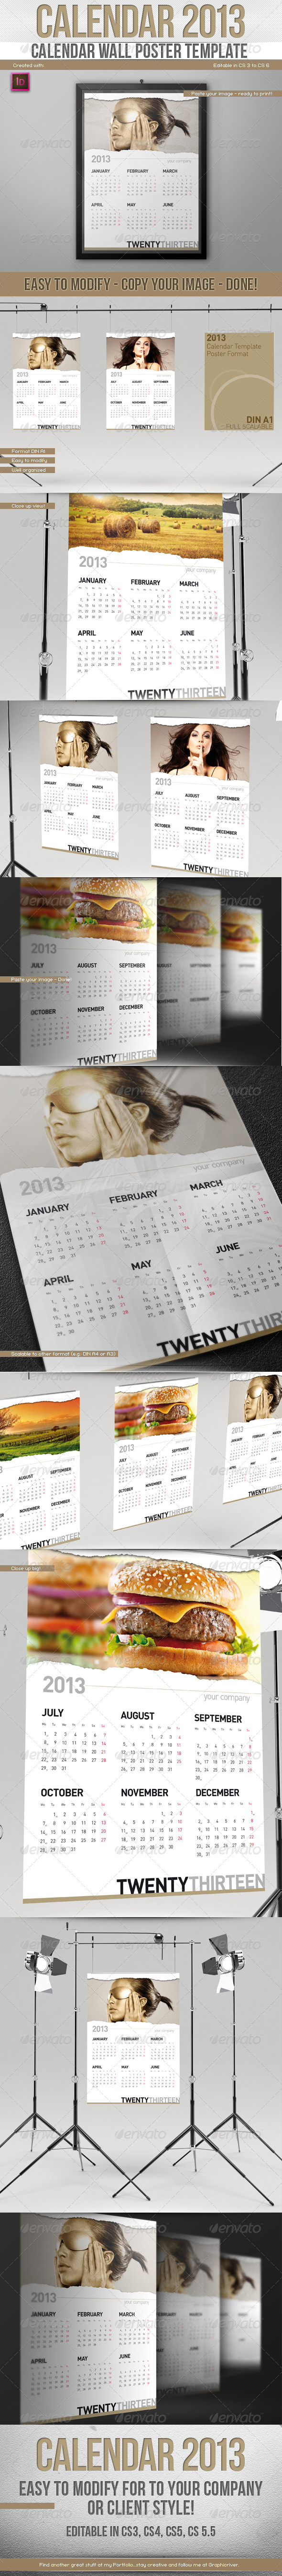 2013 Calendar // Wall Poster Template // Paper Rip - Calendars Stationery